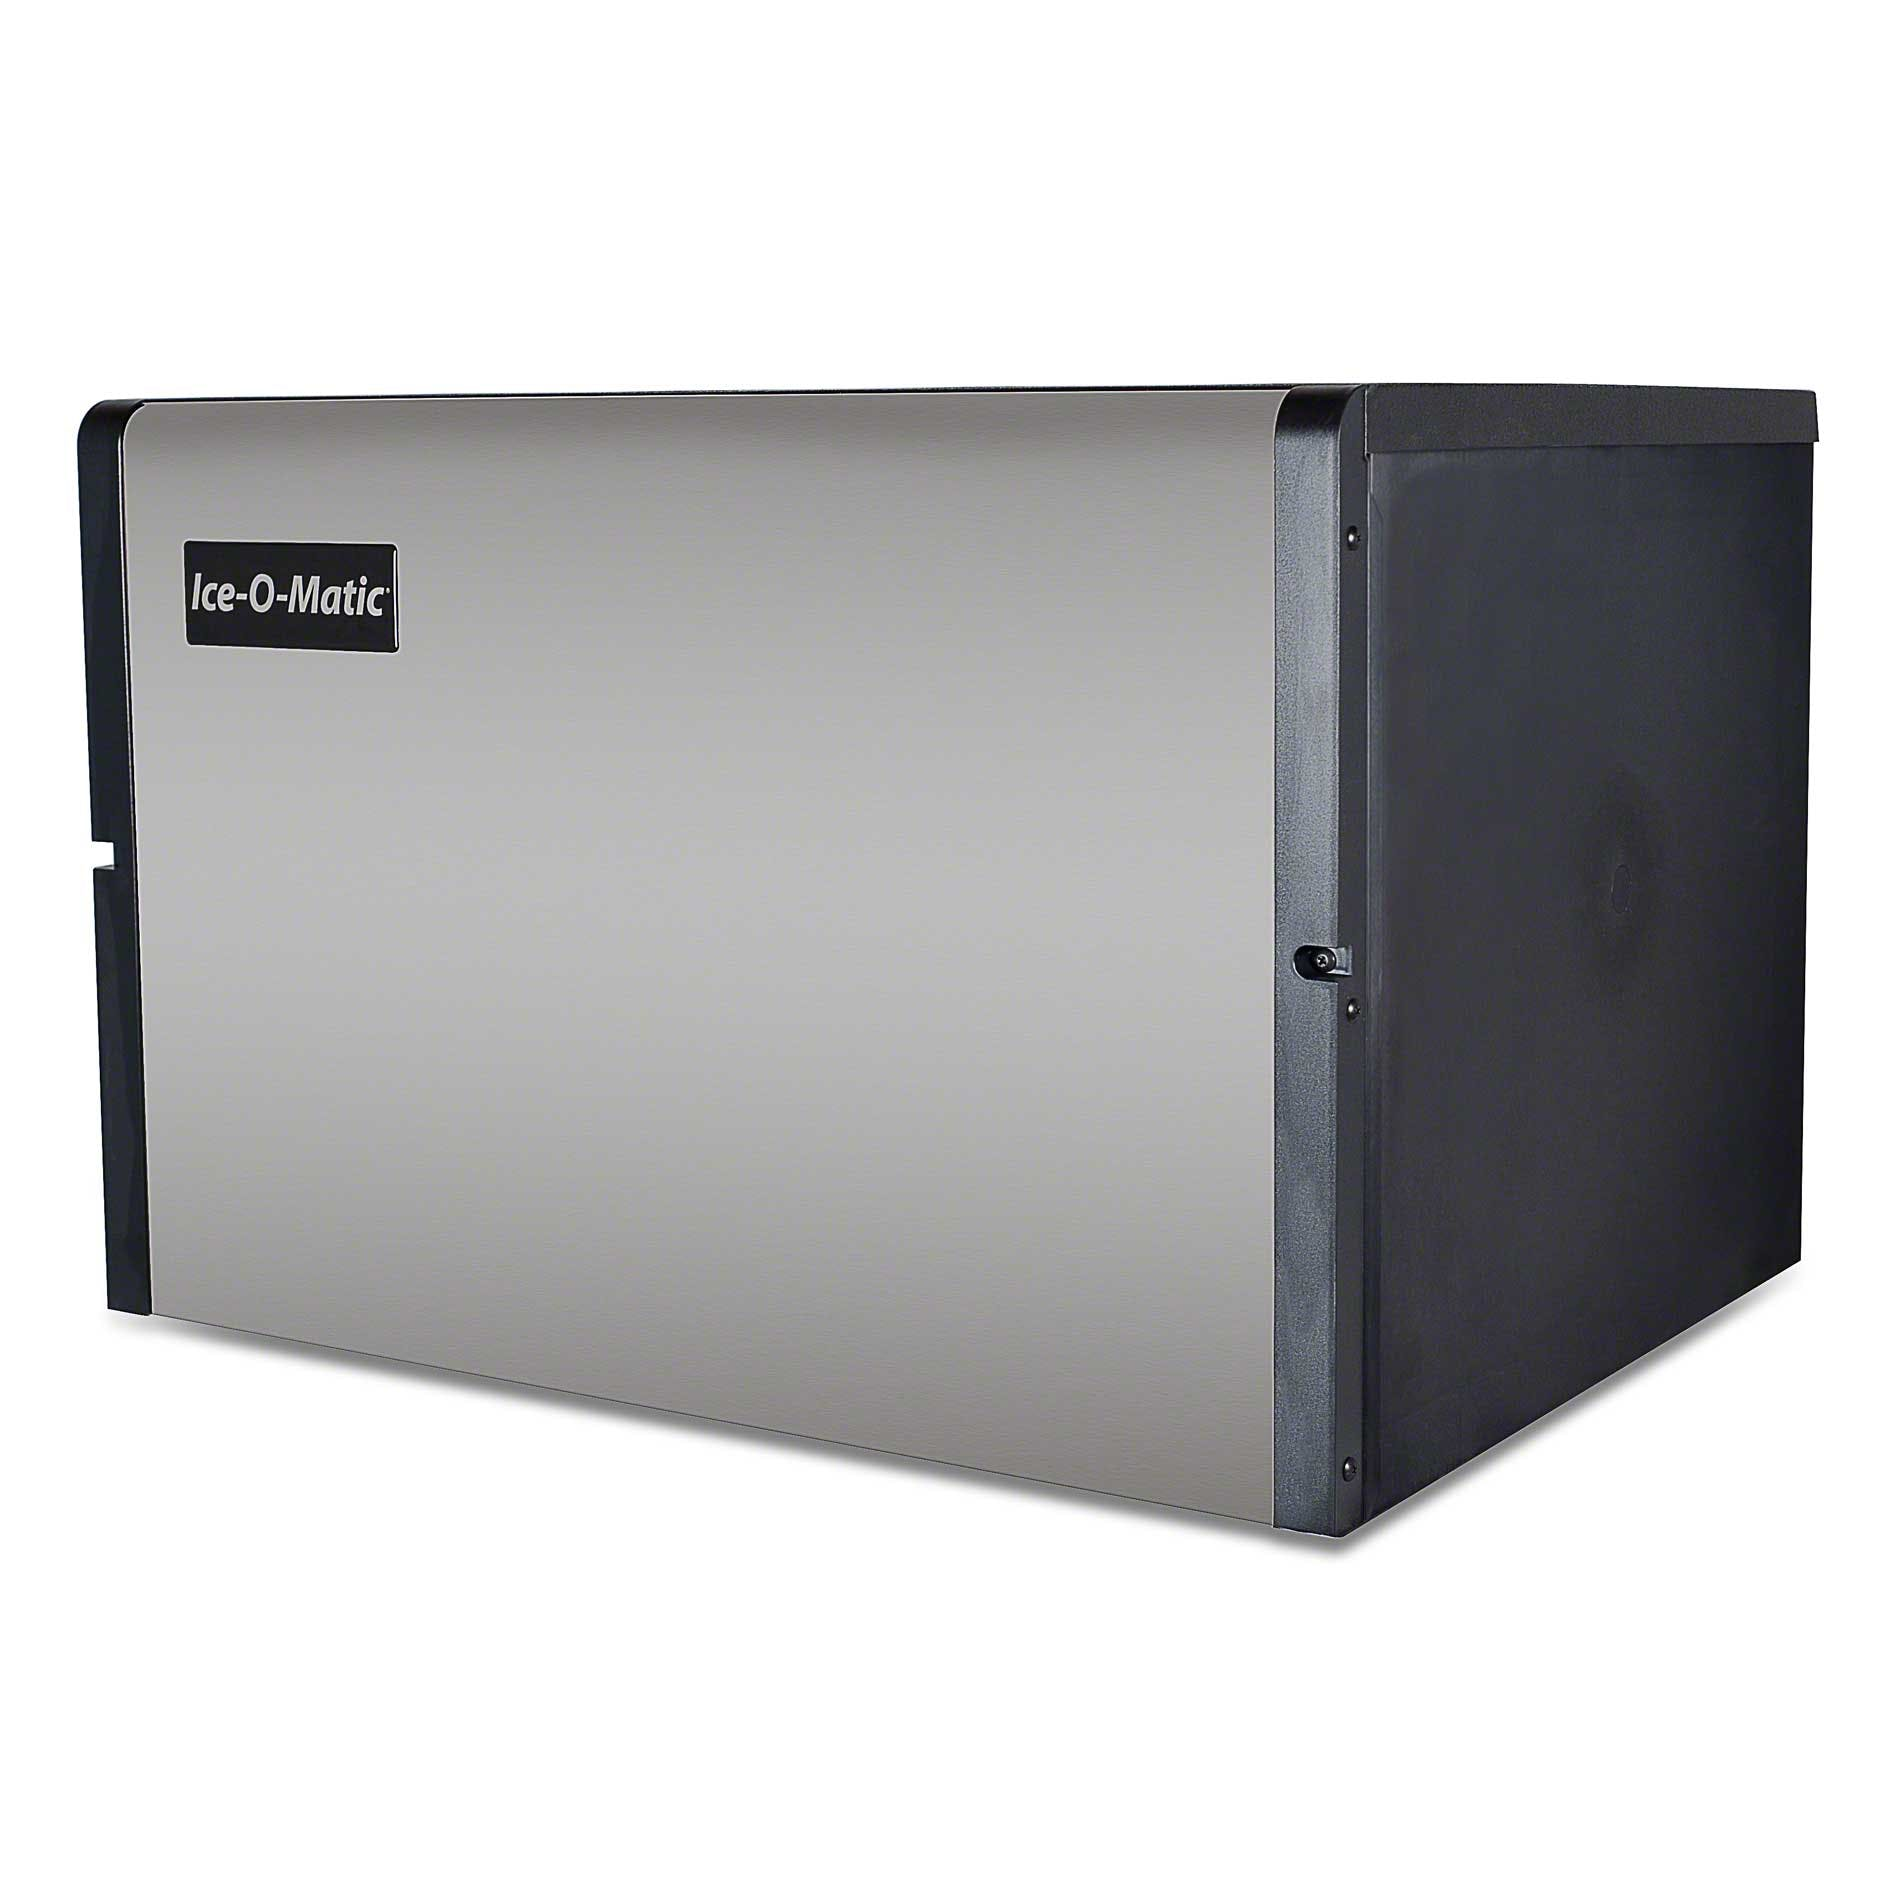 Ice-O-Matic - ICE0250FT 353 lb Full Cube Ice Machine Ice machine sold by Food Service Warehouse